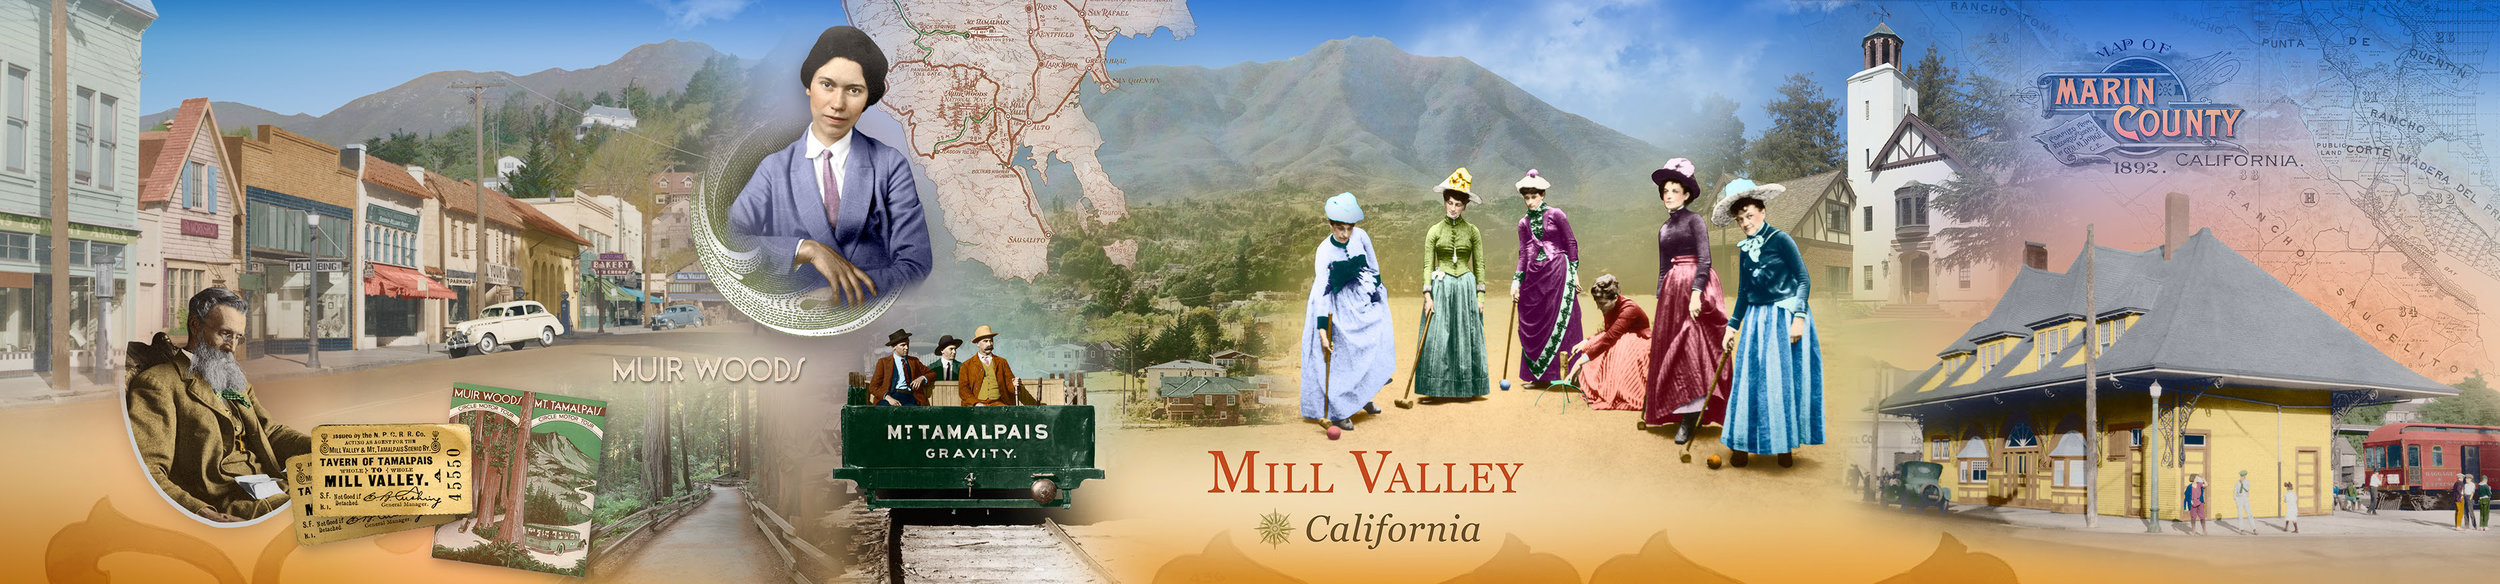 Mural Commissioned by Wells Fargo Bank for Mill Valley Branch. Elsa Gidlow is located top center.  ~March 2019